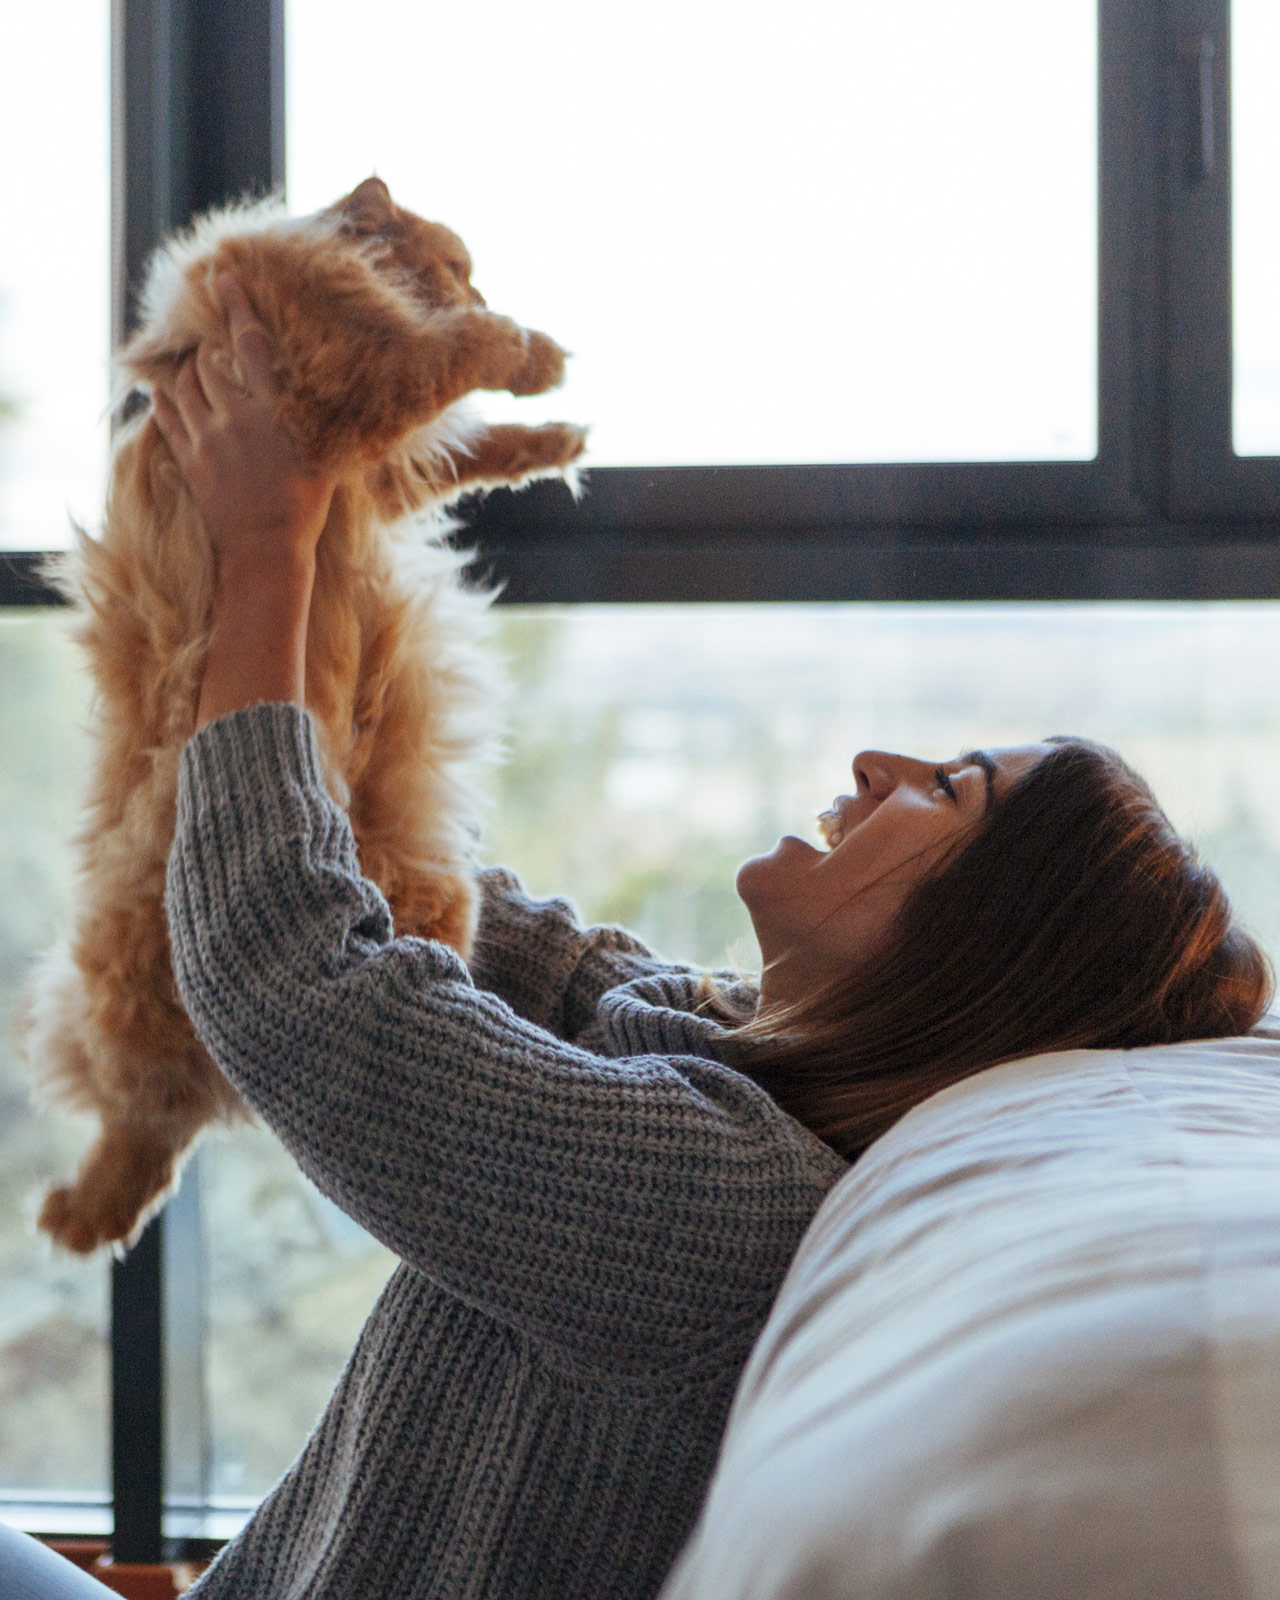 Woman lifting her cat into the air